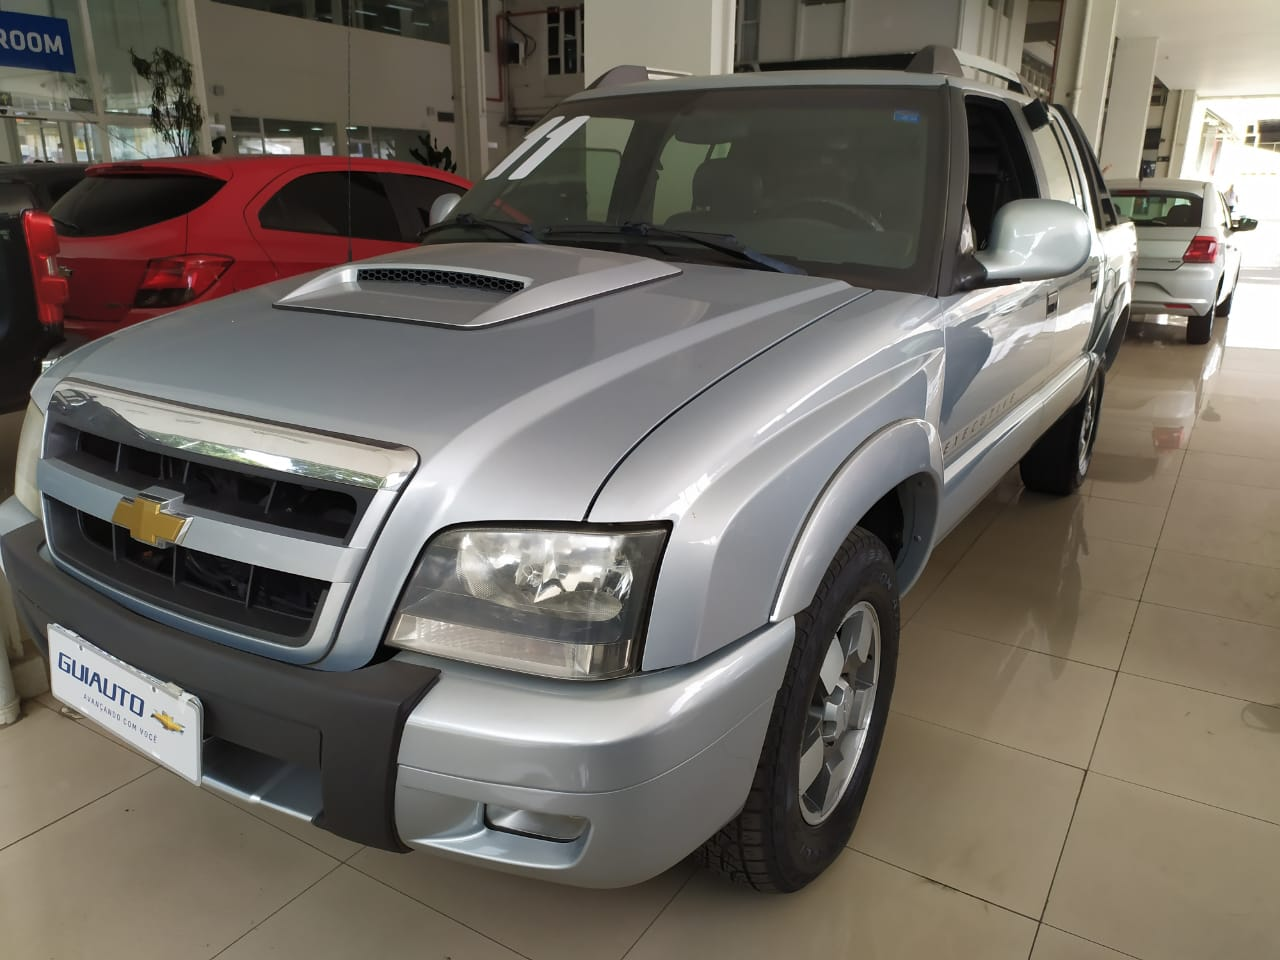 CHEVROLET S10 CABINE DUPLA S10 EXECUTIVE 4X4 2.8 TURBO ELECTRONIC (CAB DUPLA)